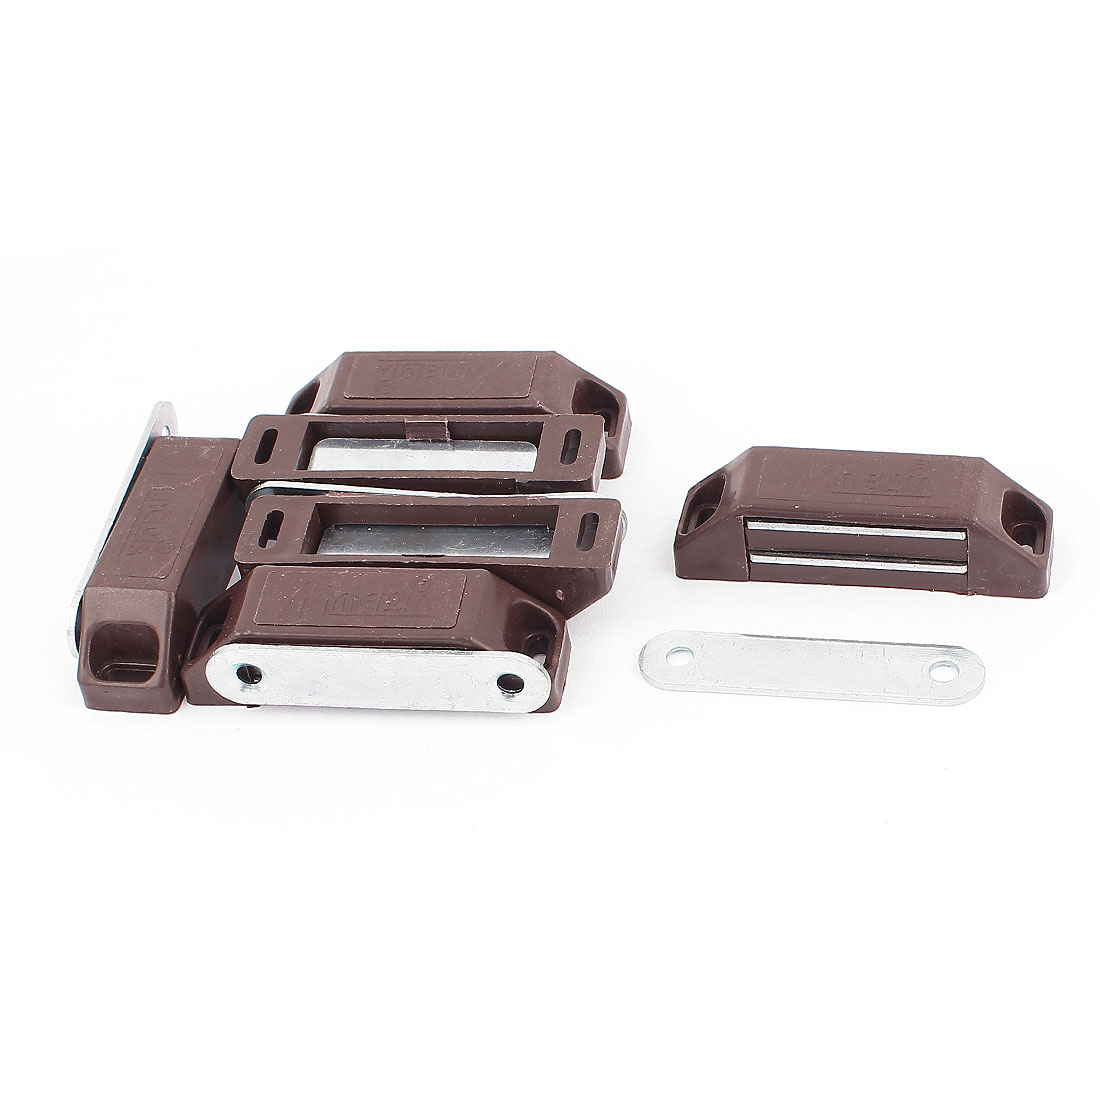 60mm x 16mm Door Cupboard Cabinet Wardrobe Magnetic Latch Catch Brown 6Pcs